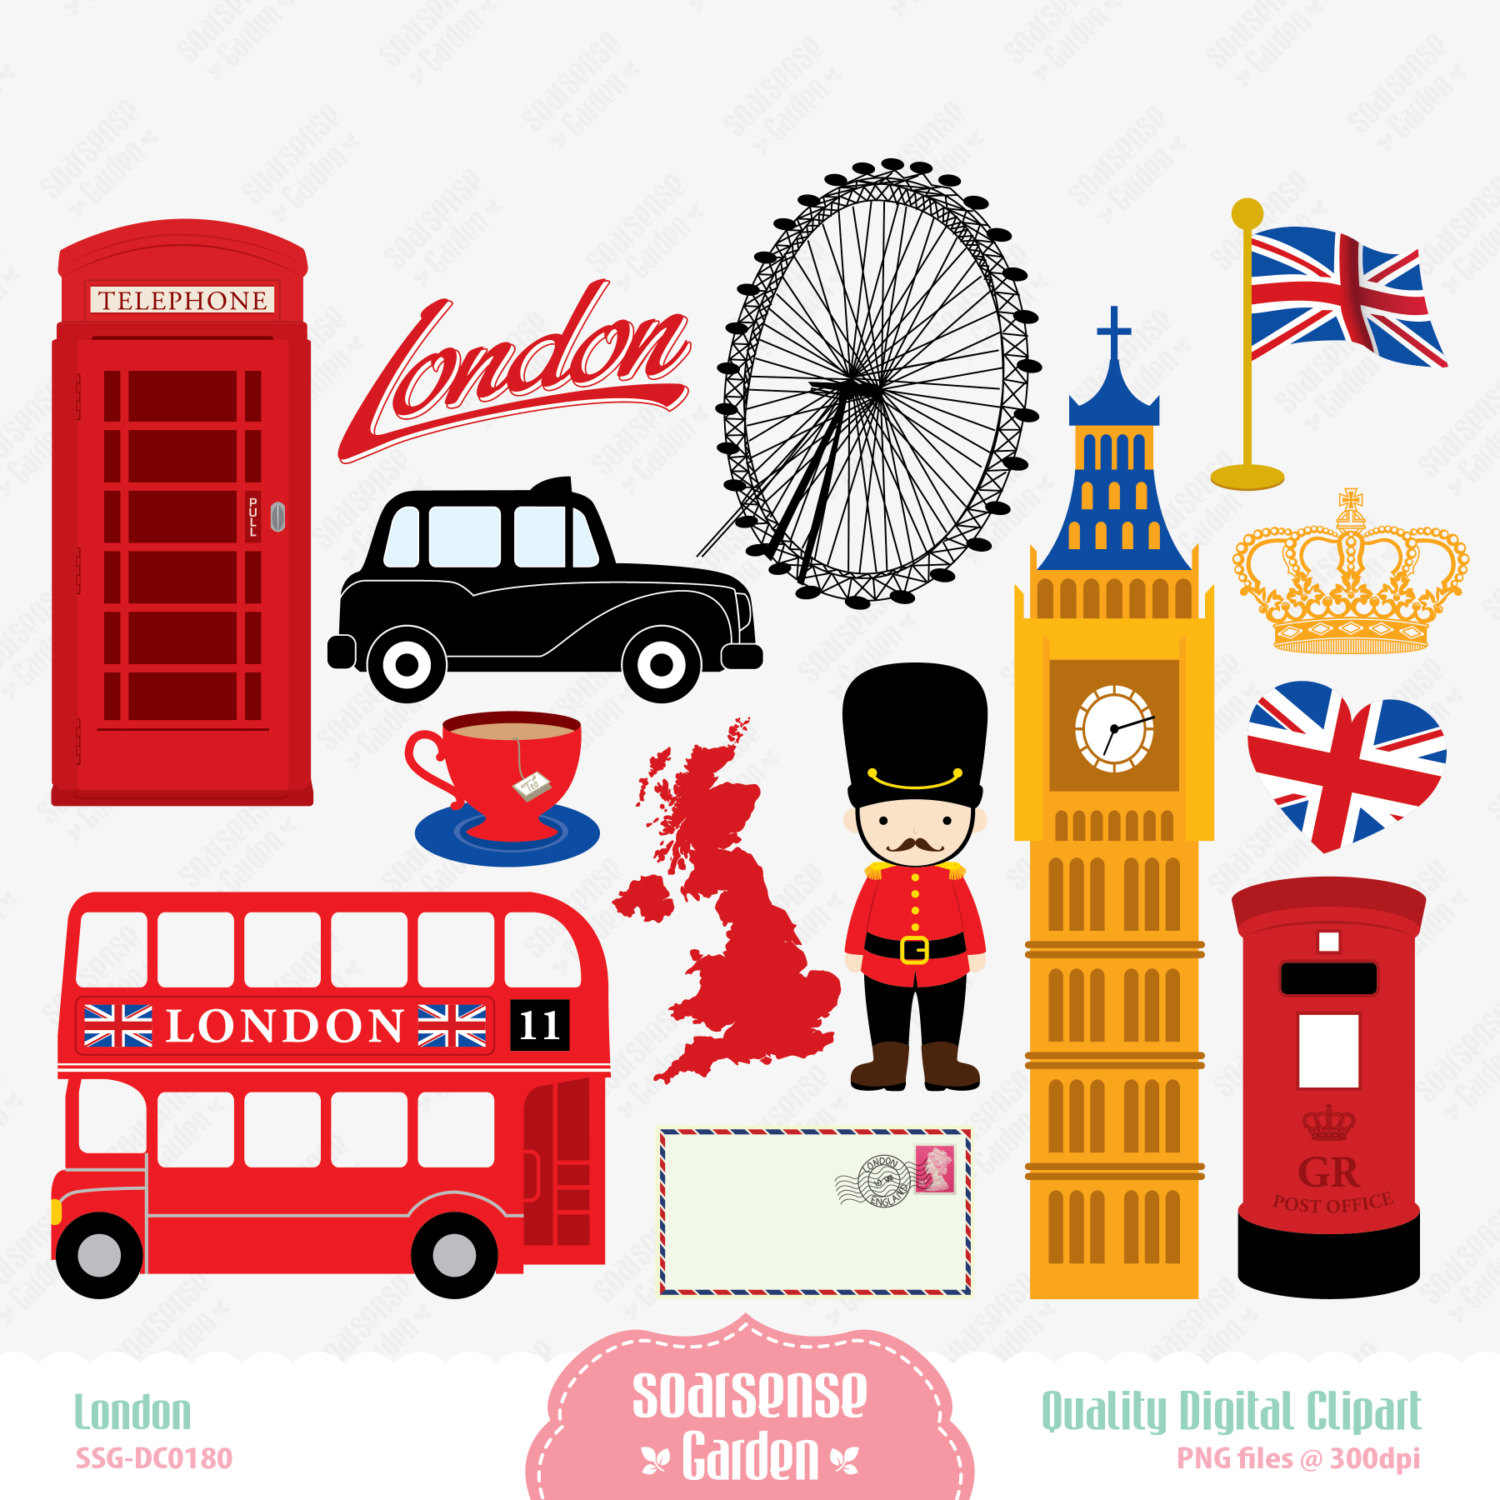 London Digital Clipart England Clipart By Ssgarden On Etsy